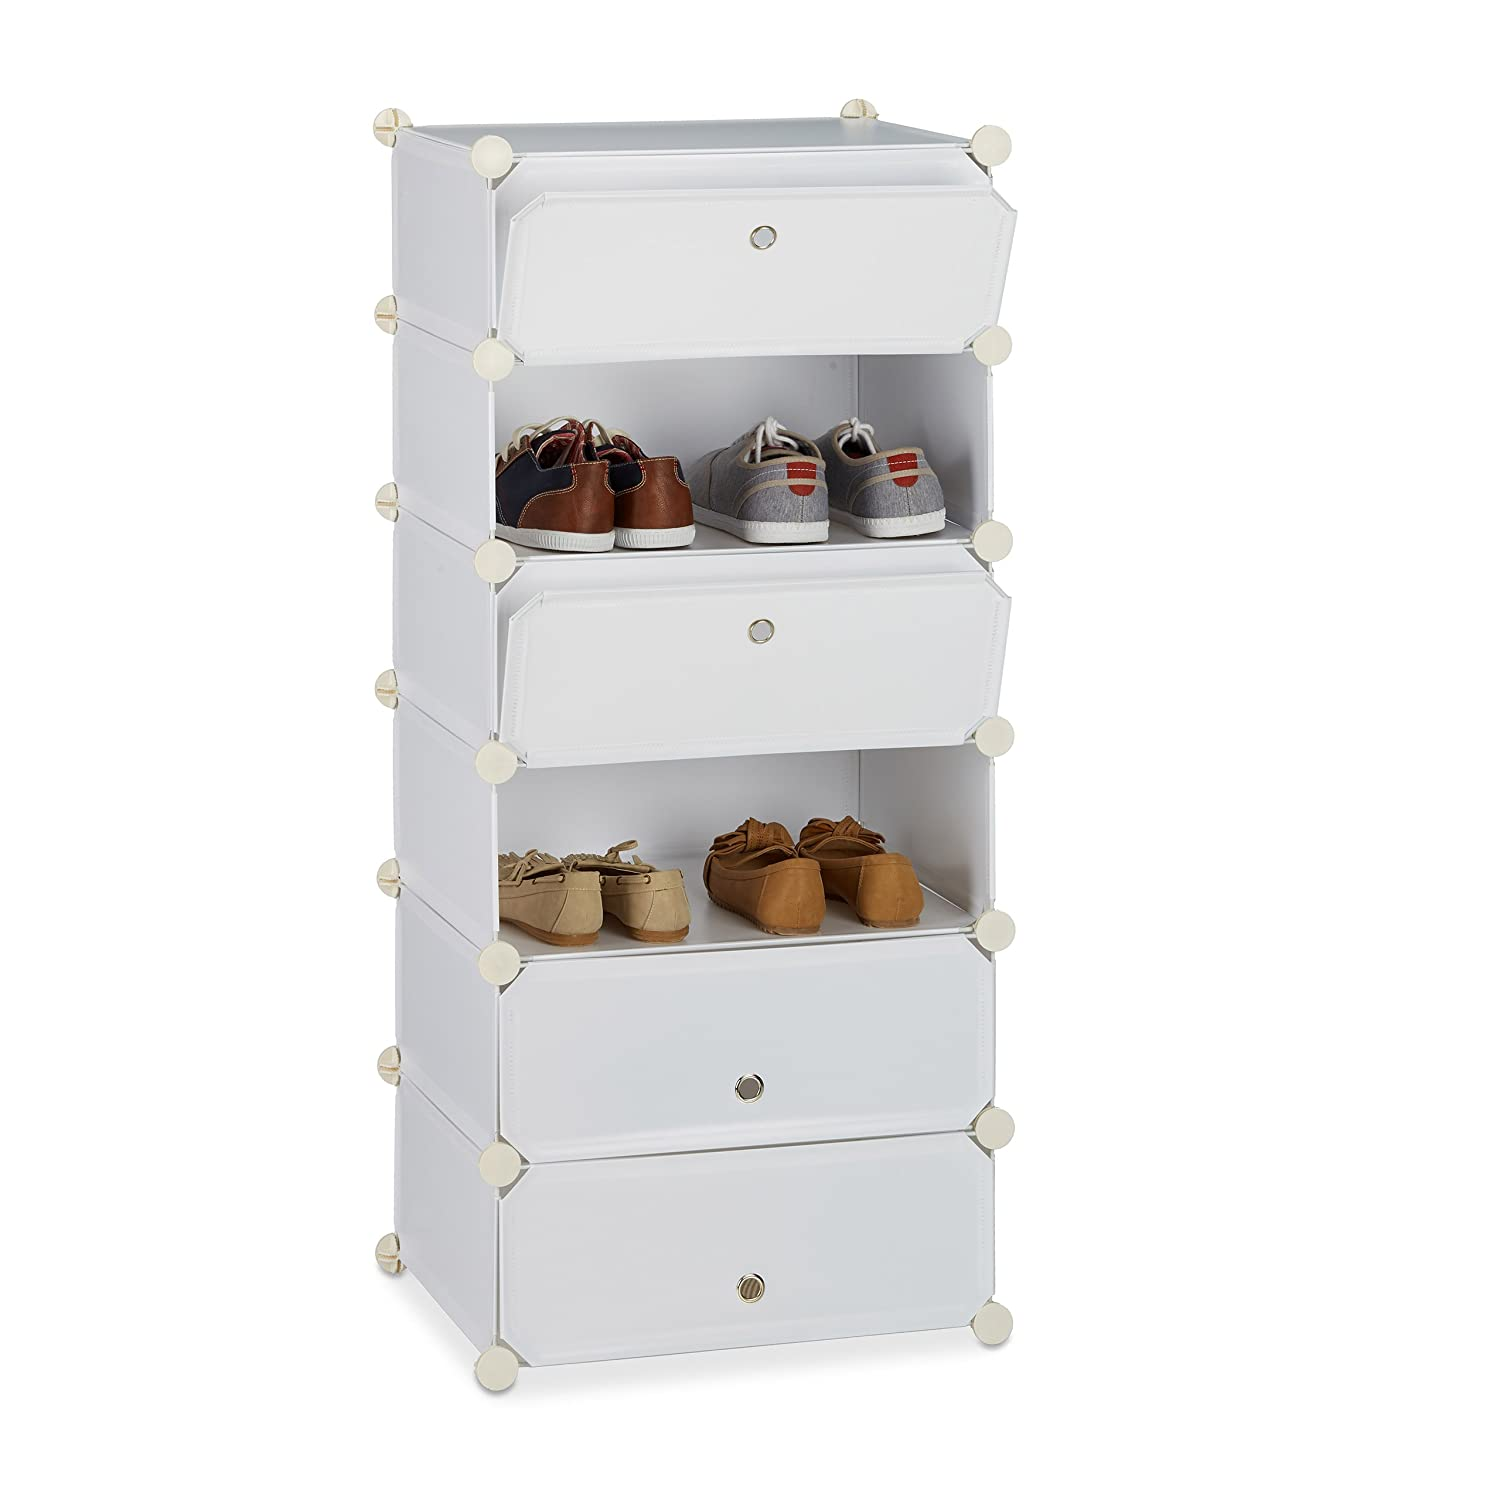 Relaxdays Plastic Shoe Cabinet, Shoe Rack, 6 Compartment Shelving Unit, HWD: 107 x 49 x 37 cm, Black 10021962_46